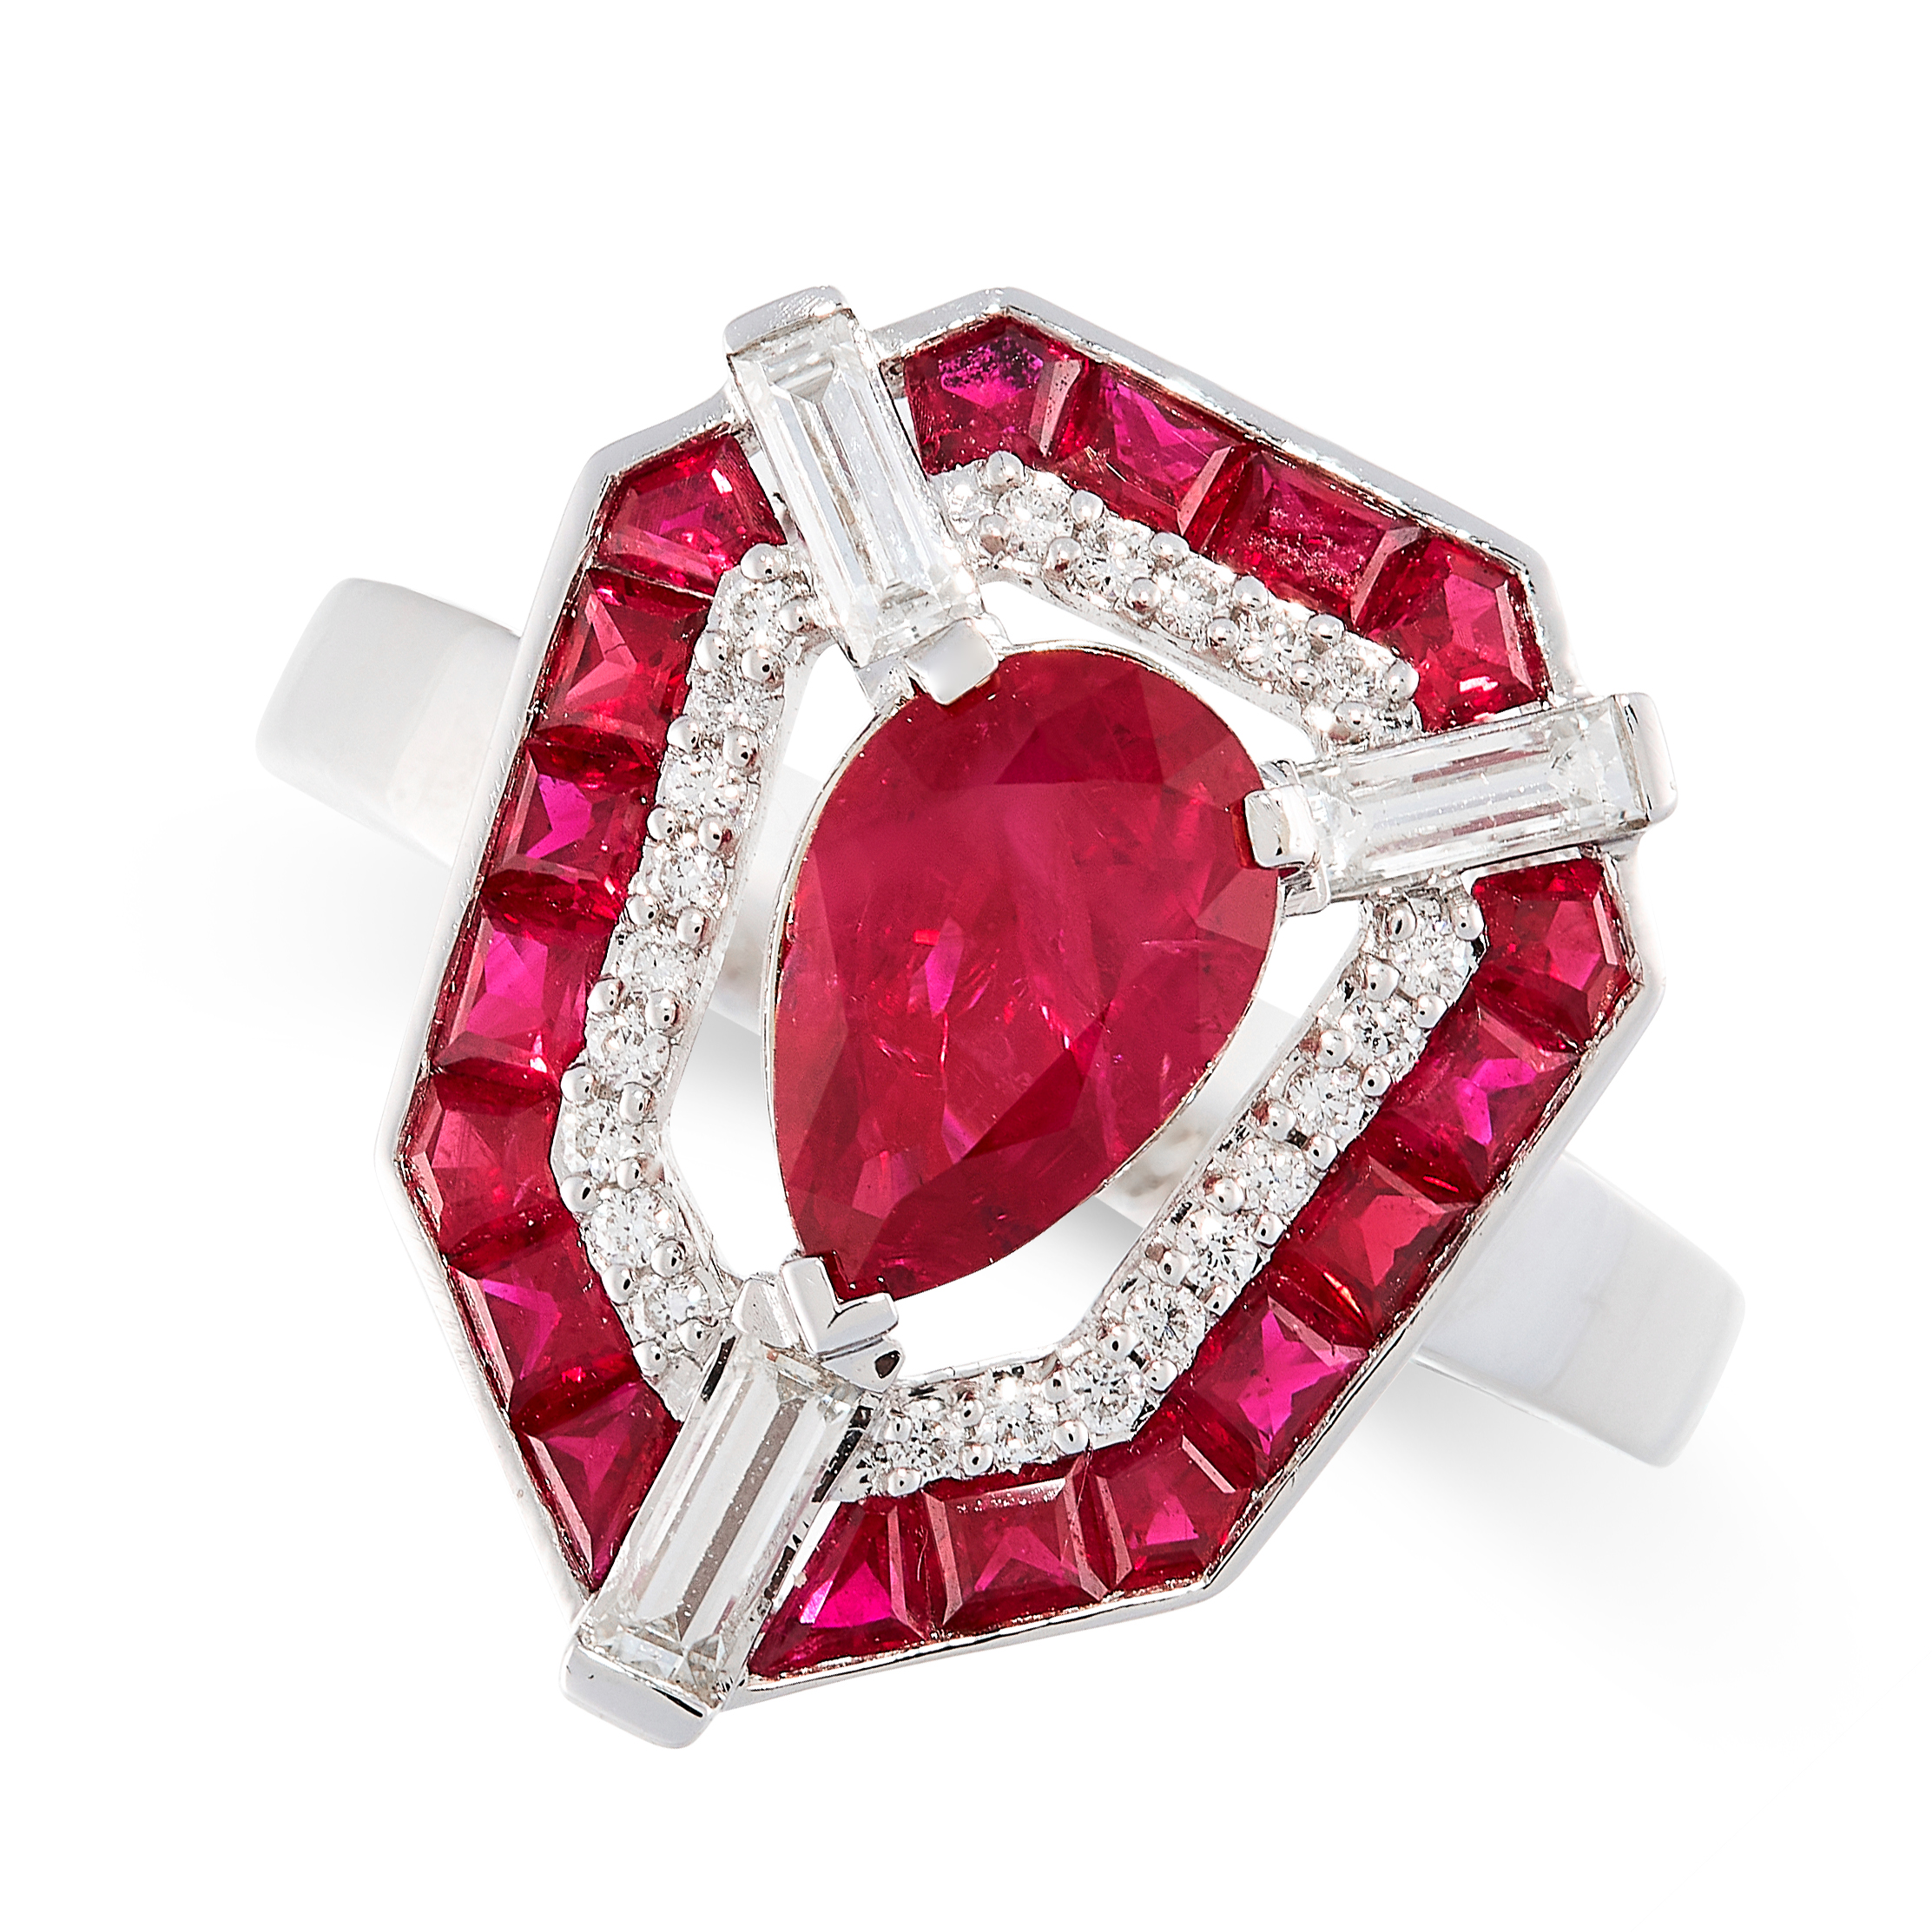 UNHEATED RUBY AND DIAMOND RING set with a pear cut ruby of 1.40 carats in a border of round cut